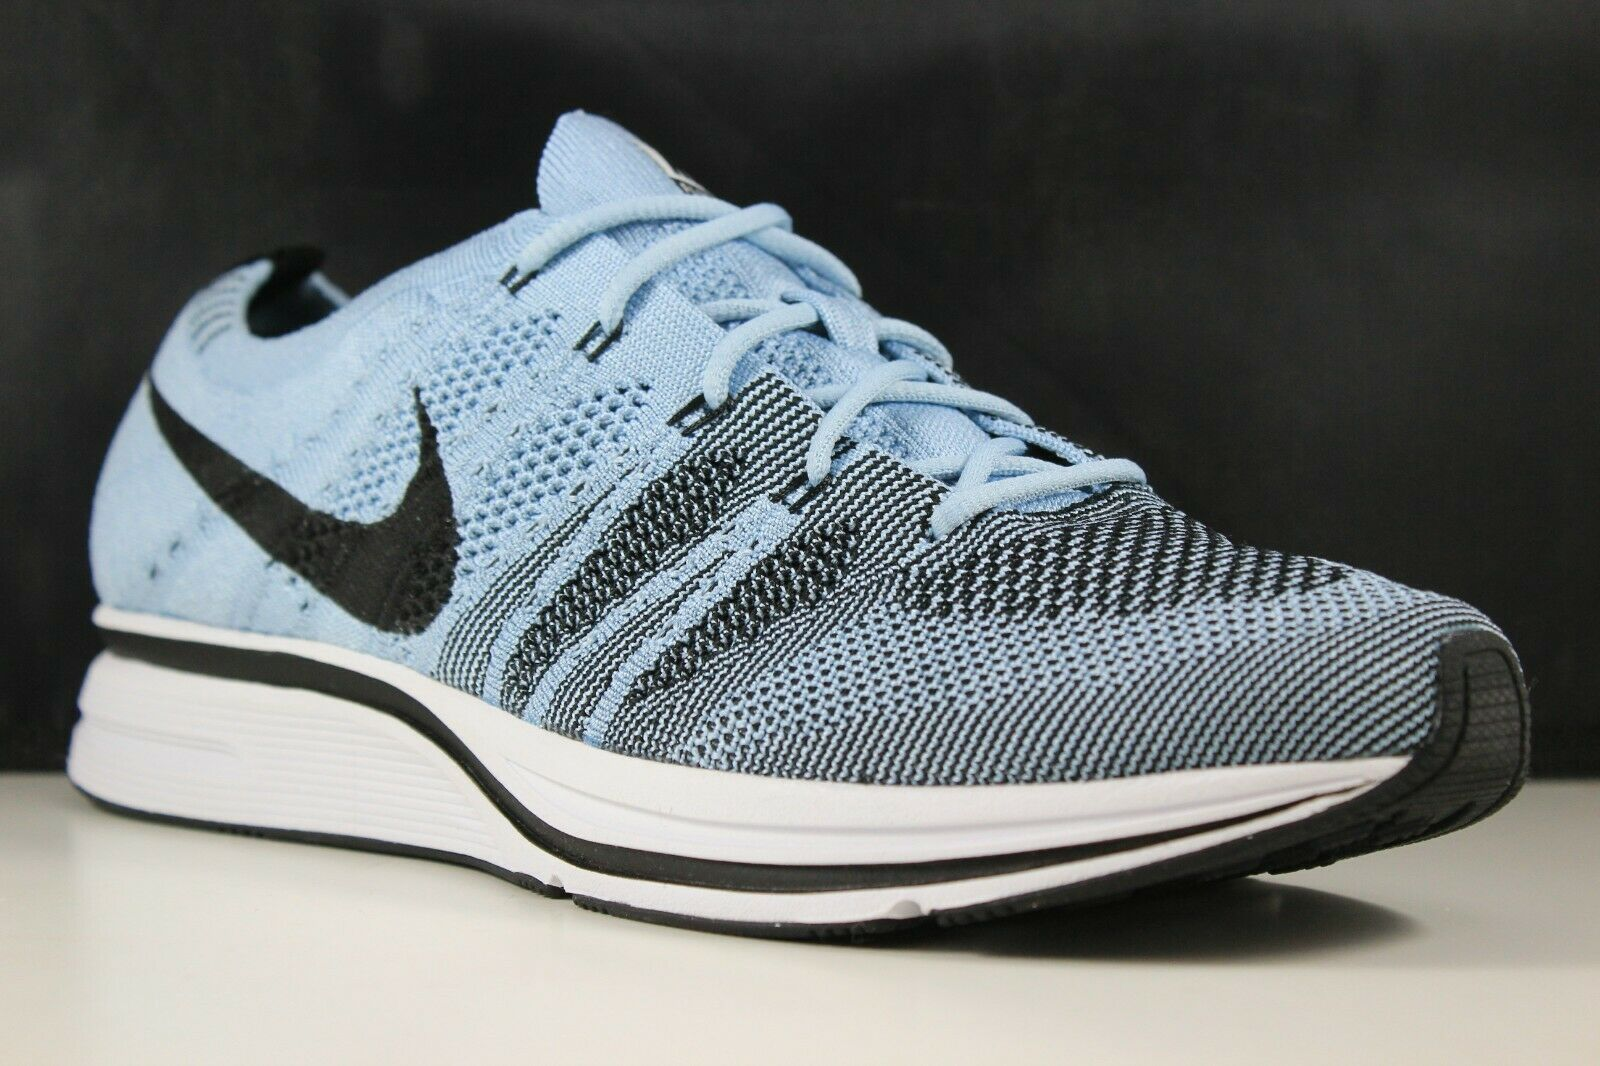 Nike Flyknit Trainer Size 12 Mens Cirrus bluee Black-White AH8396-400